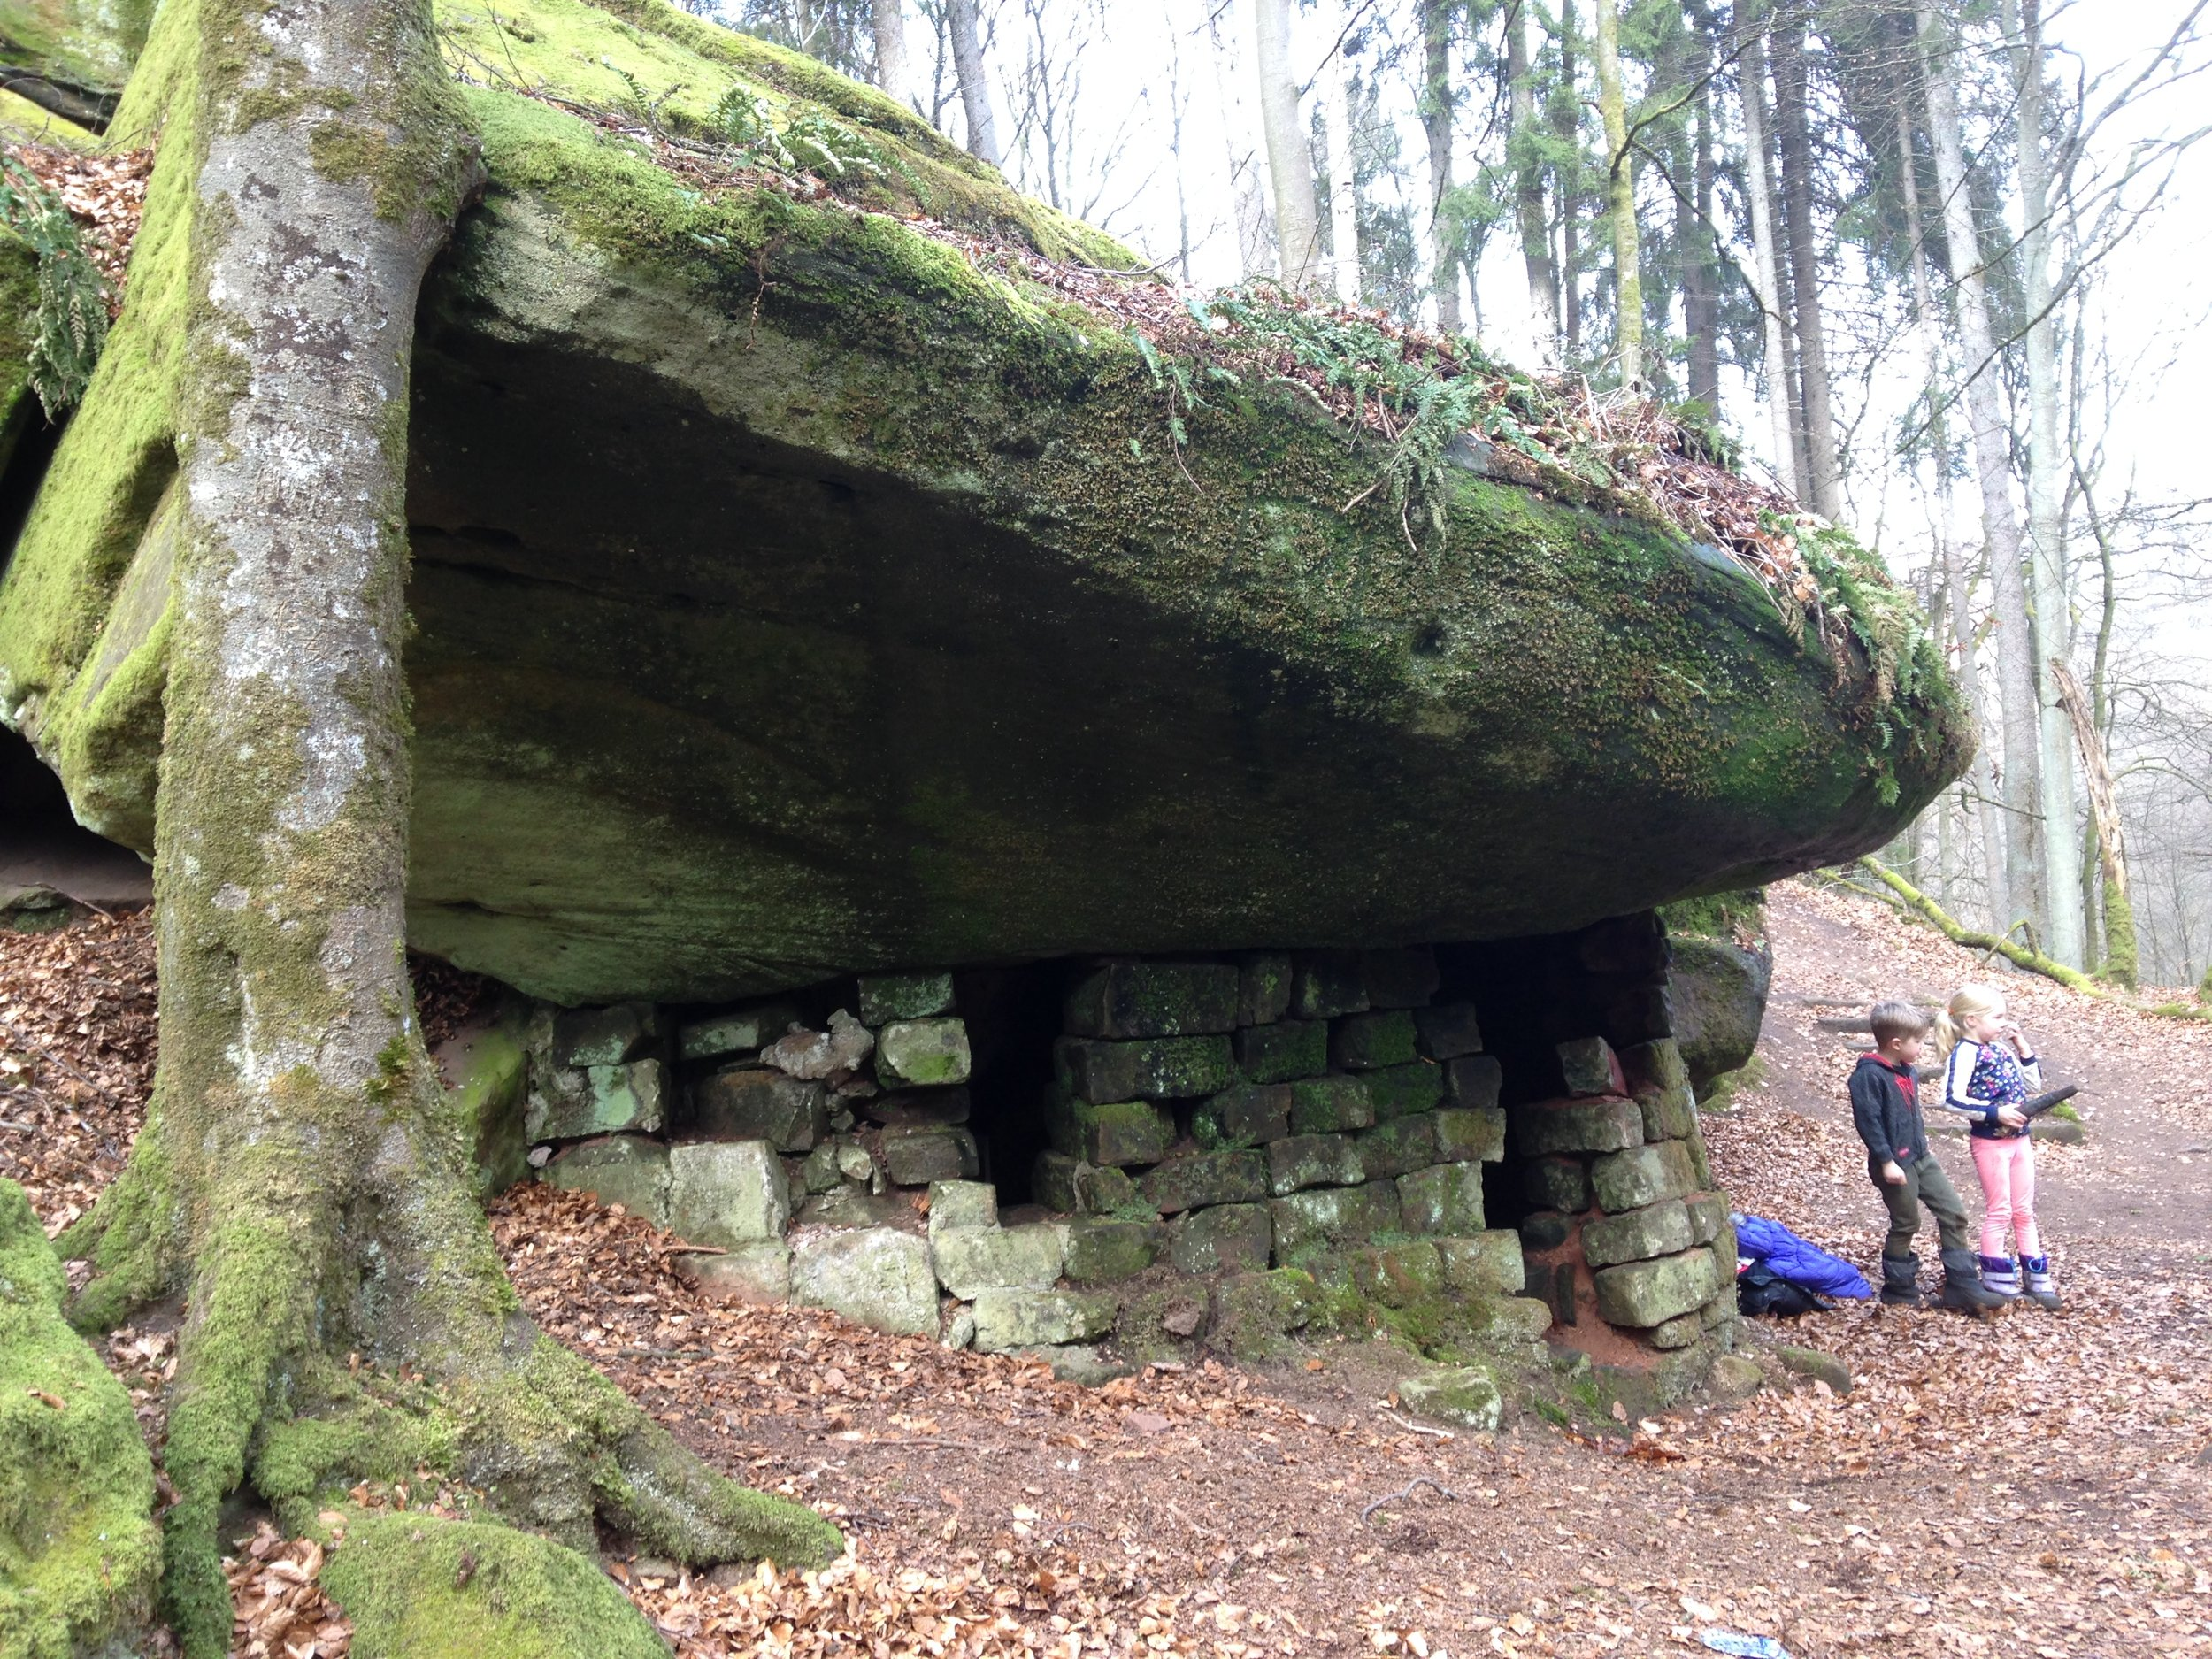 The mysterious cave dwelling!